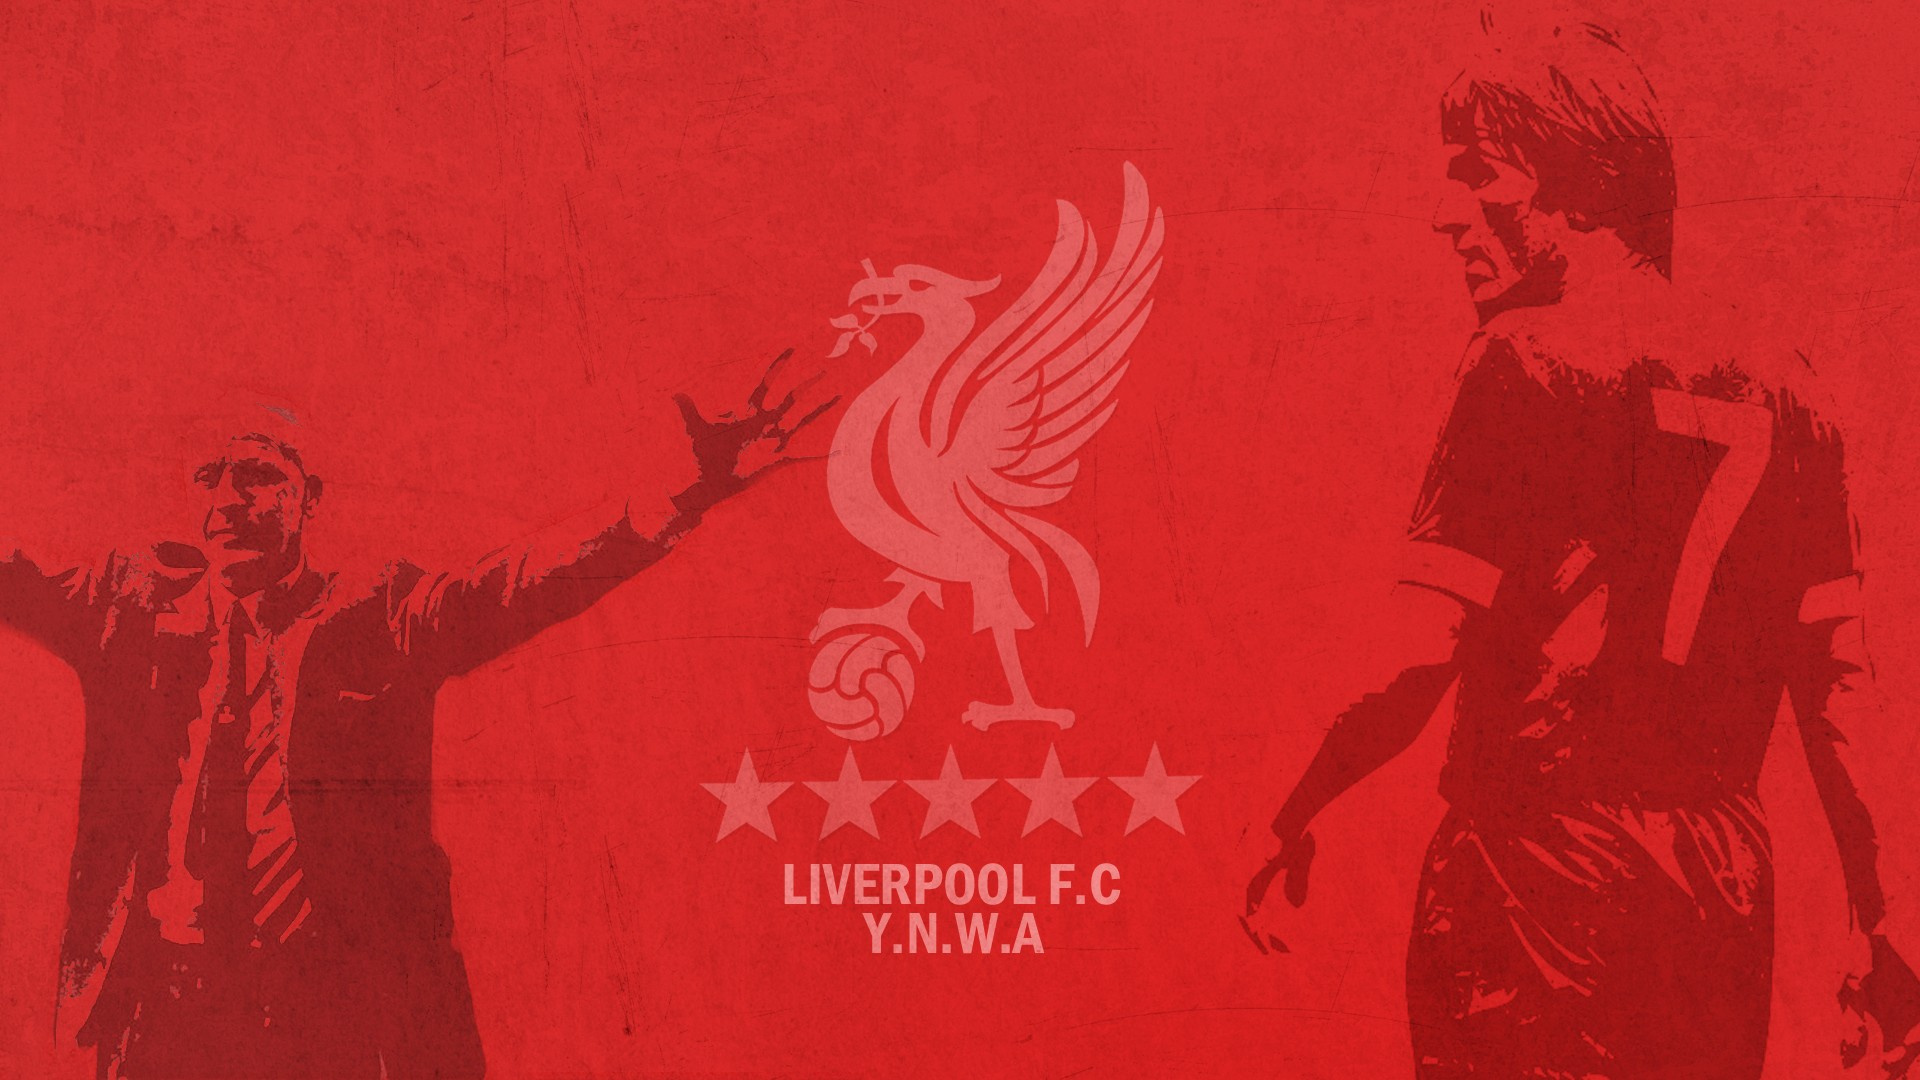 Liverpool Fc Wallpaper Hd High Quality Liverpool Fc Wallpaper Full Hd Pictures 1920x1080